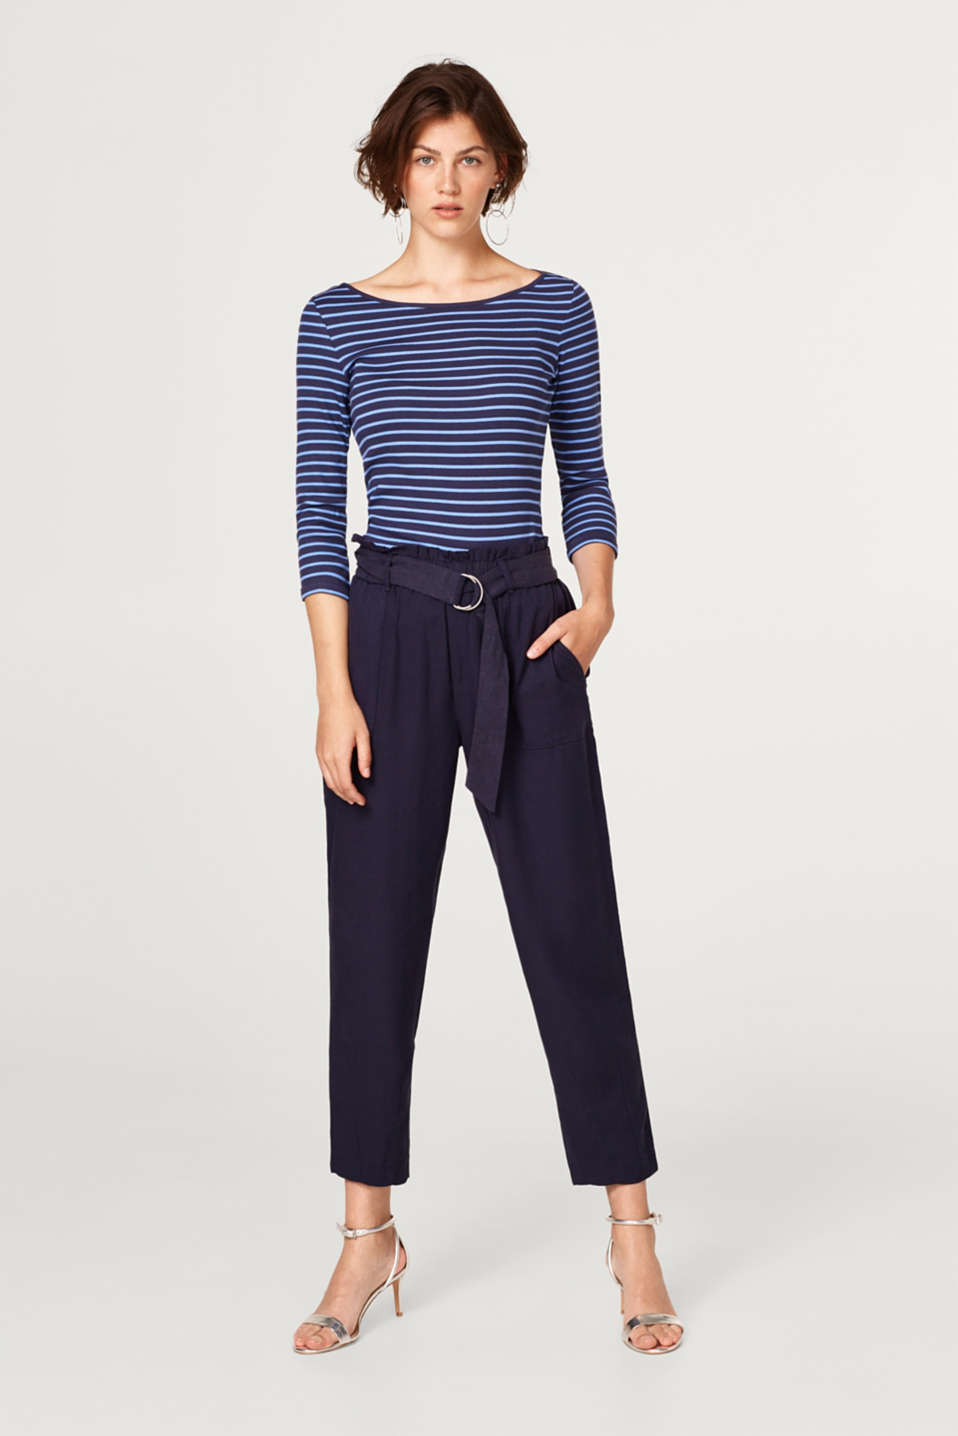 Striped, ribbed top with a bateau neckline